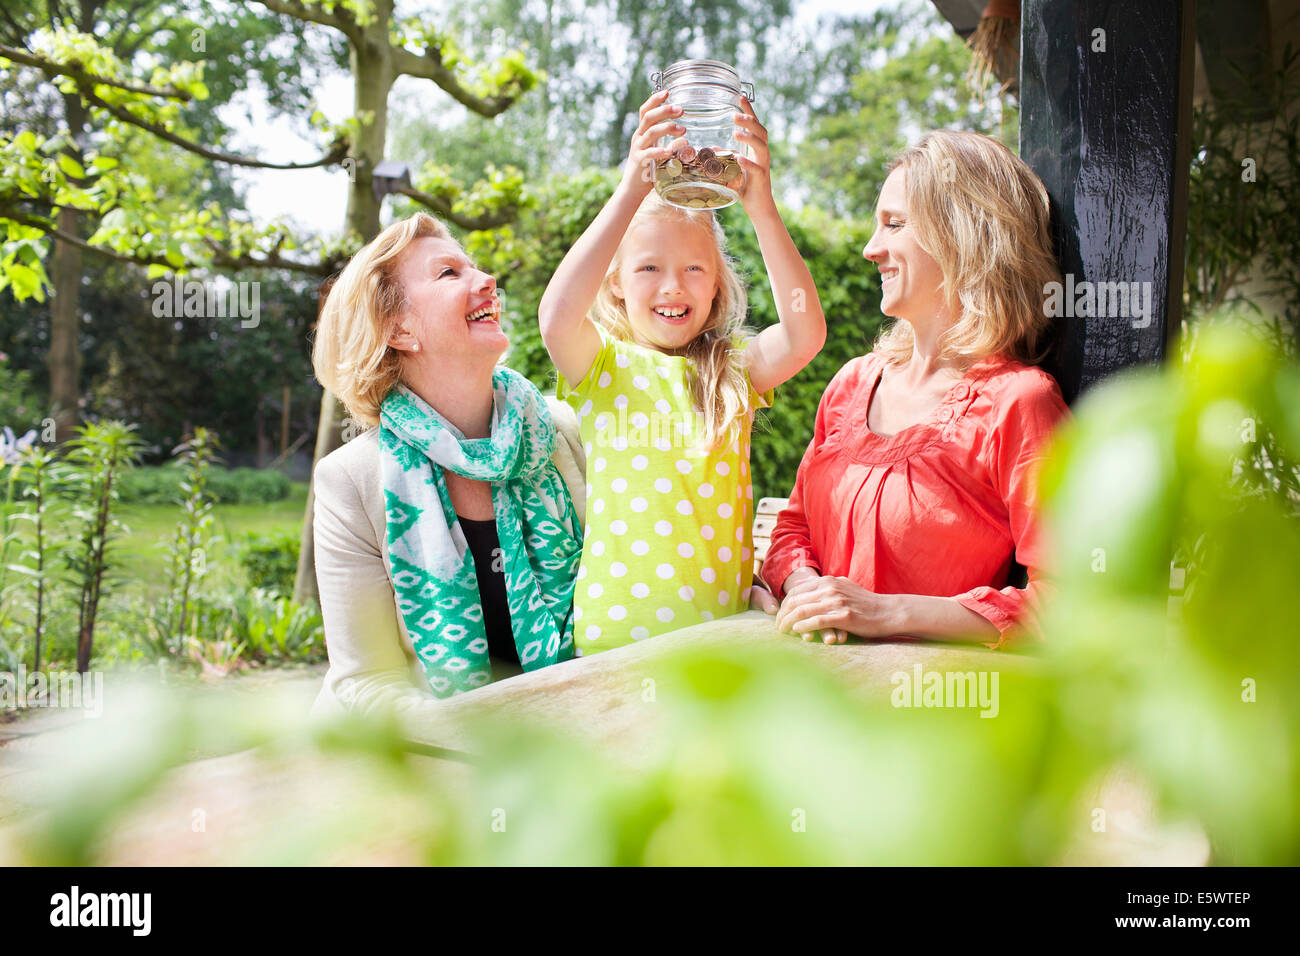 Girl opening jar of coins with family Stock Photo